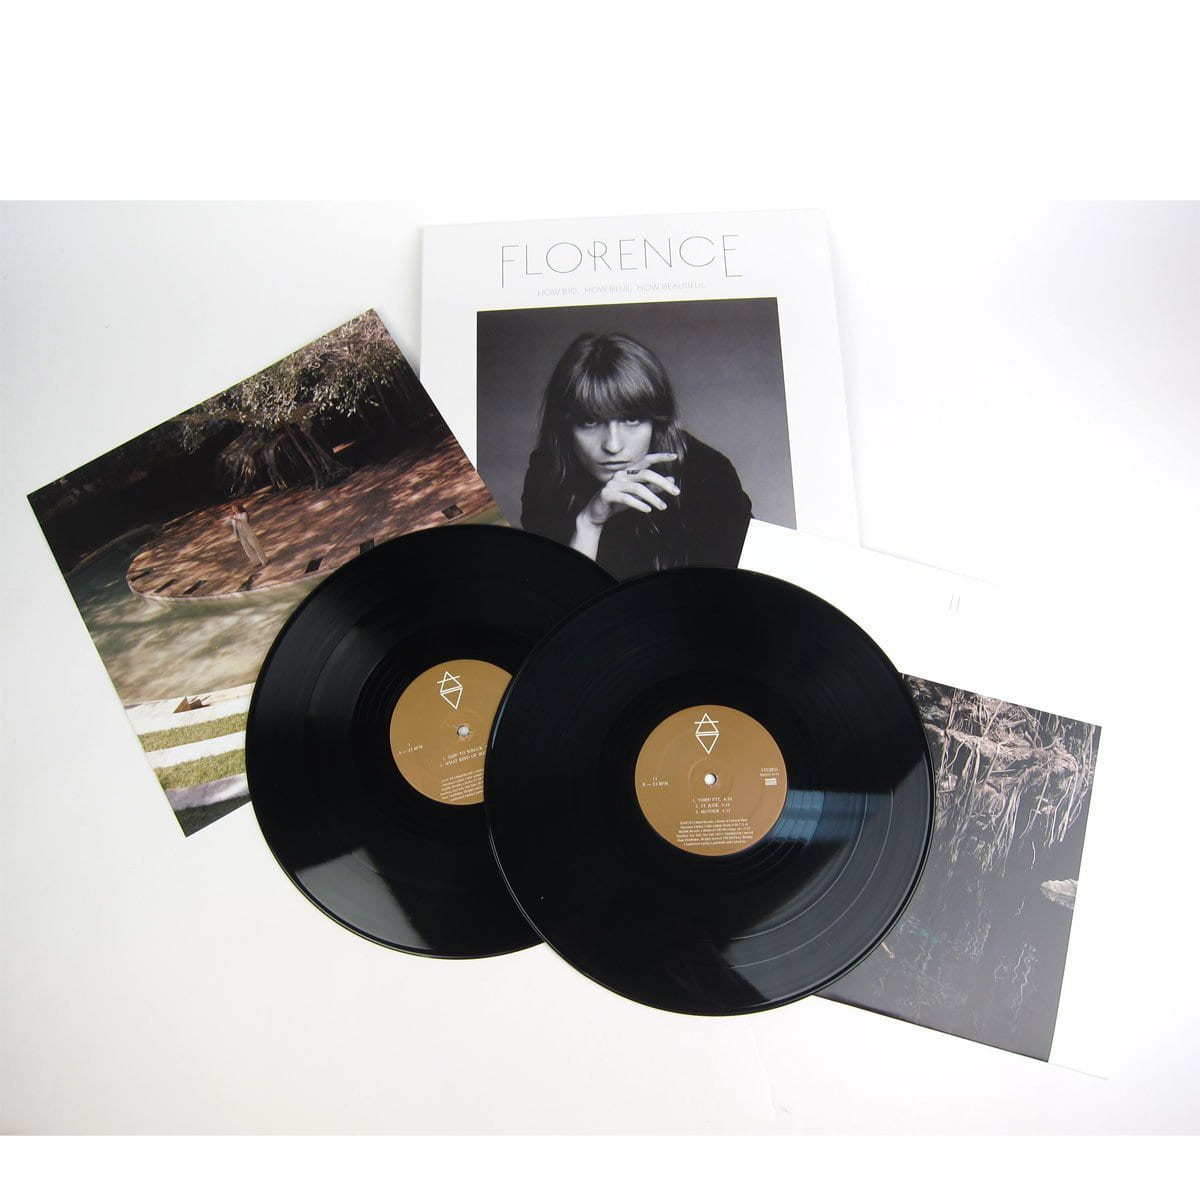 Florence And The Machine - How Big, How Blue, How Beautiful [2LP] (Vinyl) - Urban Vinyl | Records, Headphones, and more.